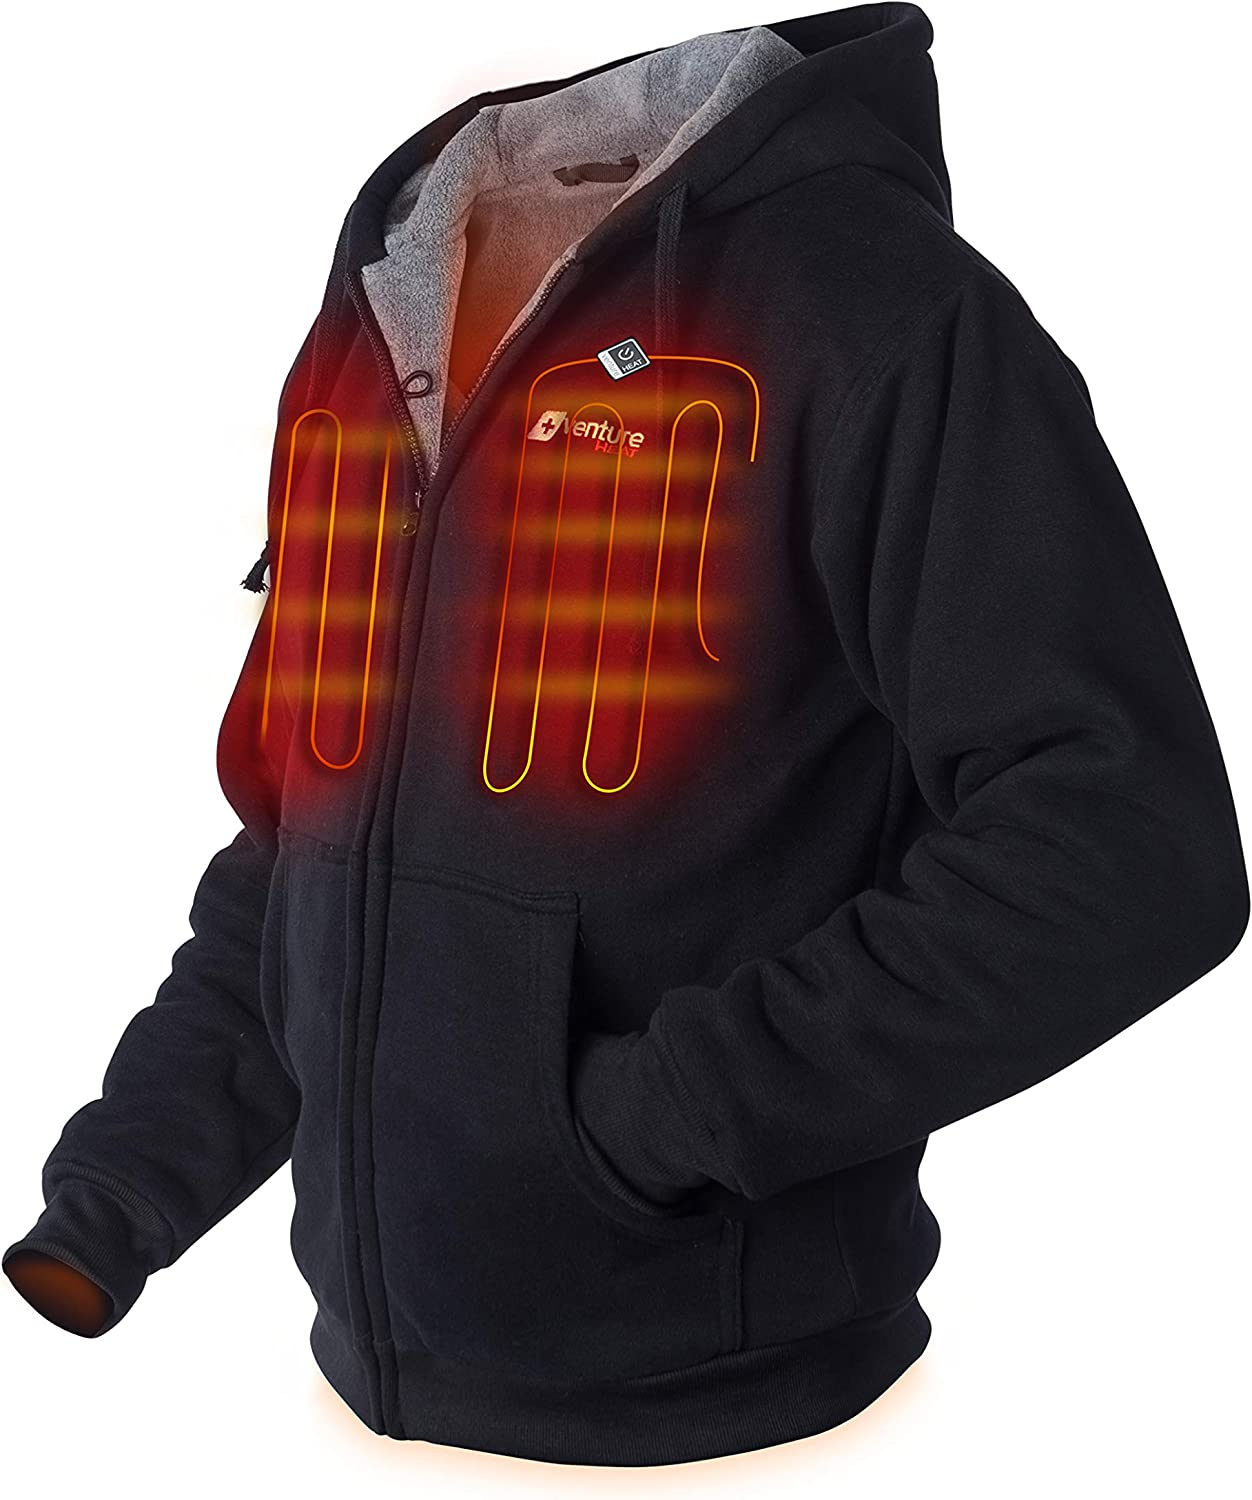 Venture Heat Heated Hoodie with Battery - Electric Sweater Jacket Men Women, Transit 2.0 (Fleece or Canvas) at  Men's Clothing store